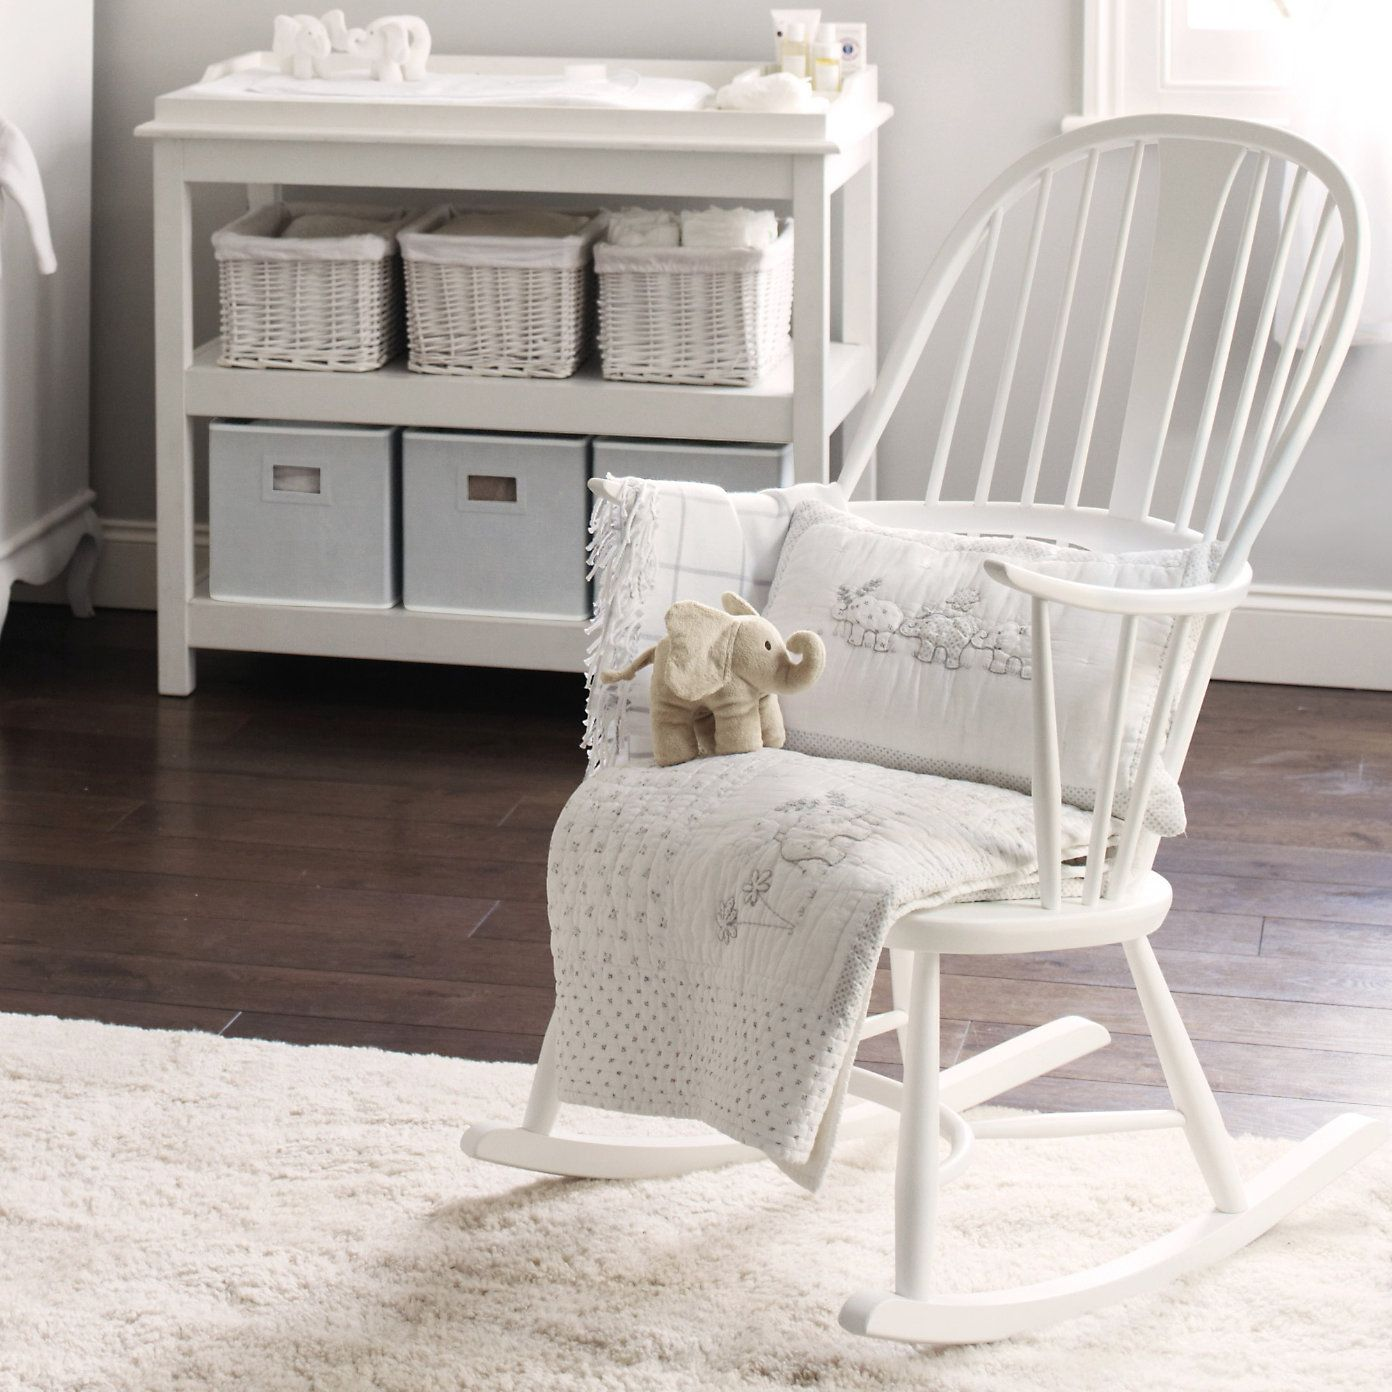 Bedroom Rocking Chair Swing Louis Vuitton Ercol Furniture The White Company